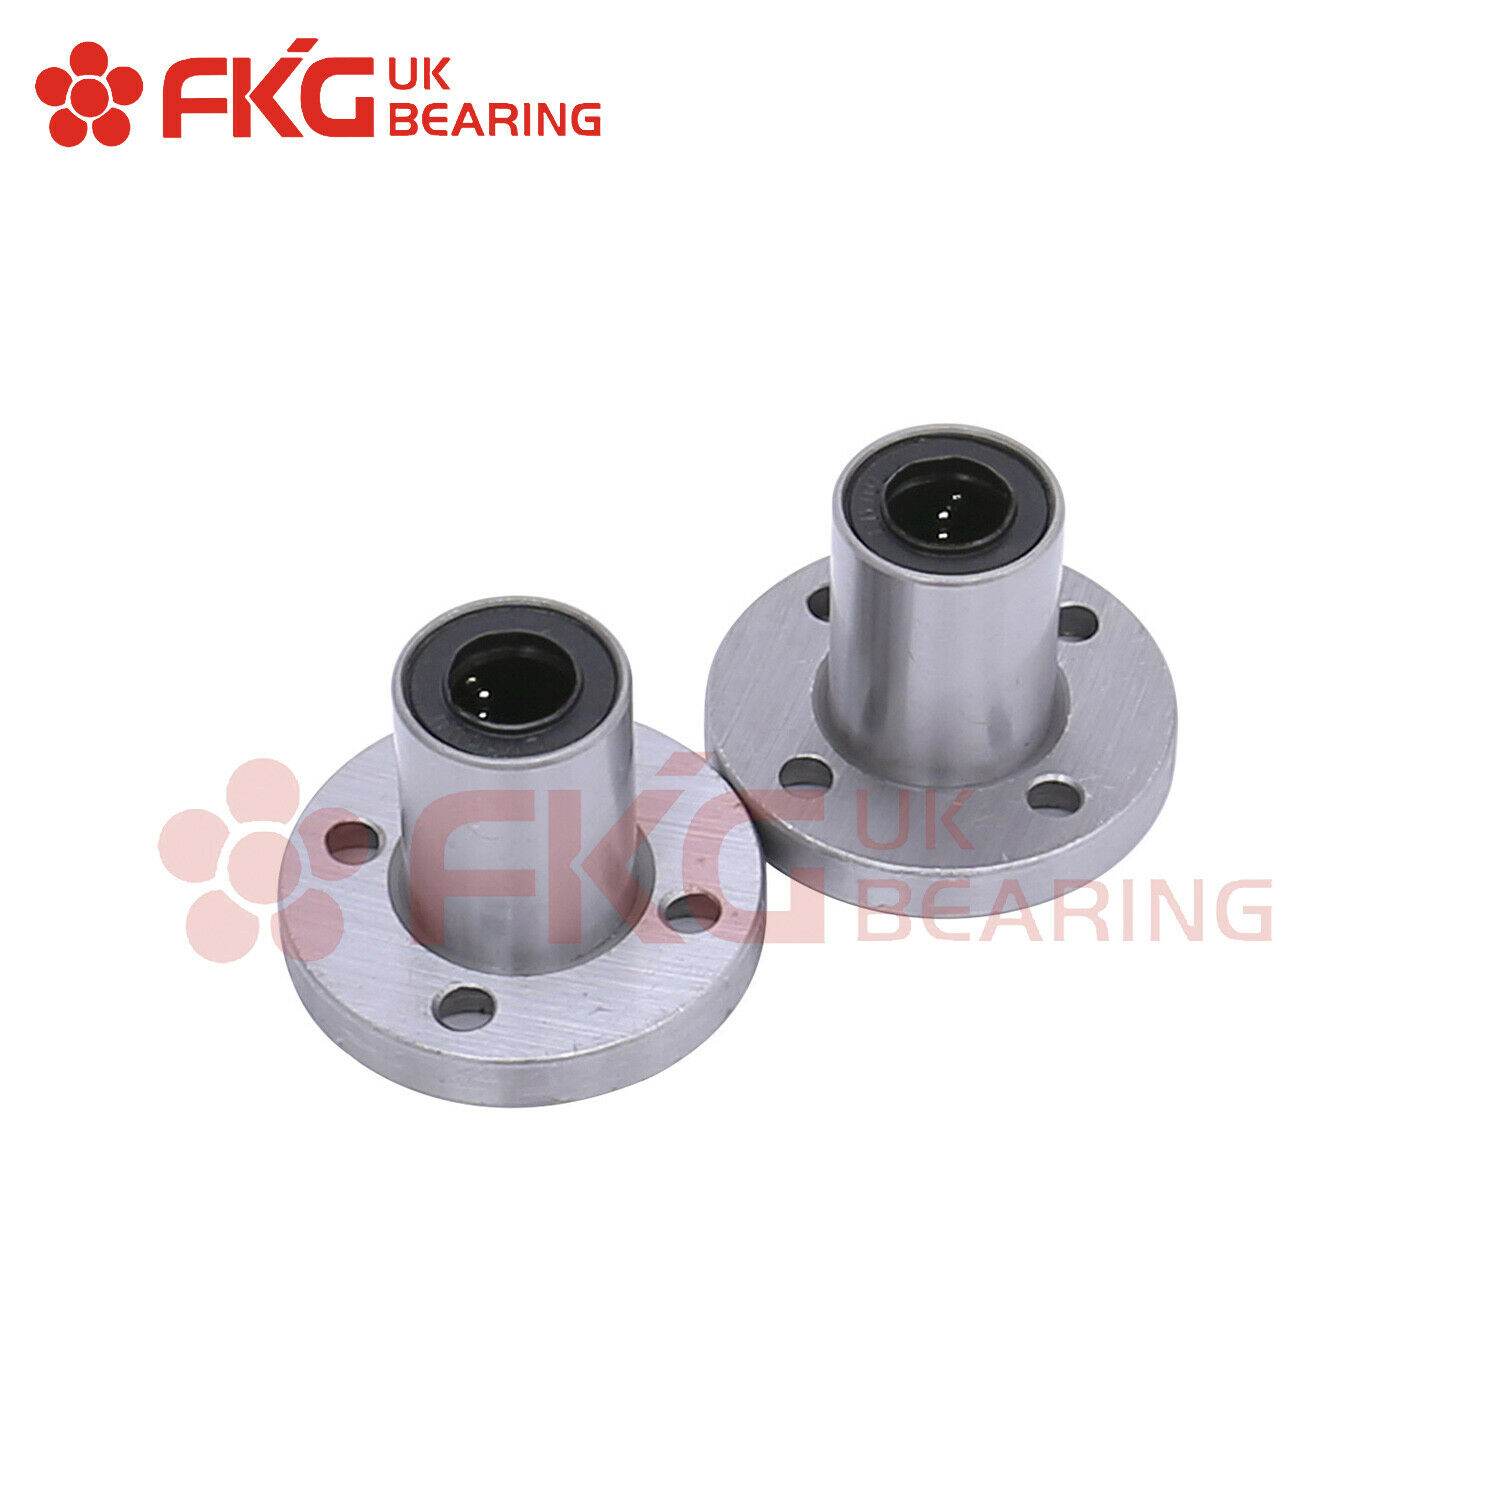 LMF10UU Round Flange Lineer Bushing Bearing with Rubber Seals 10x19x29mm